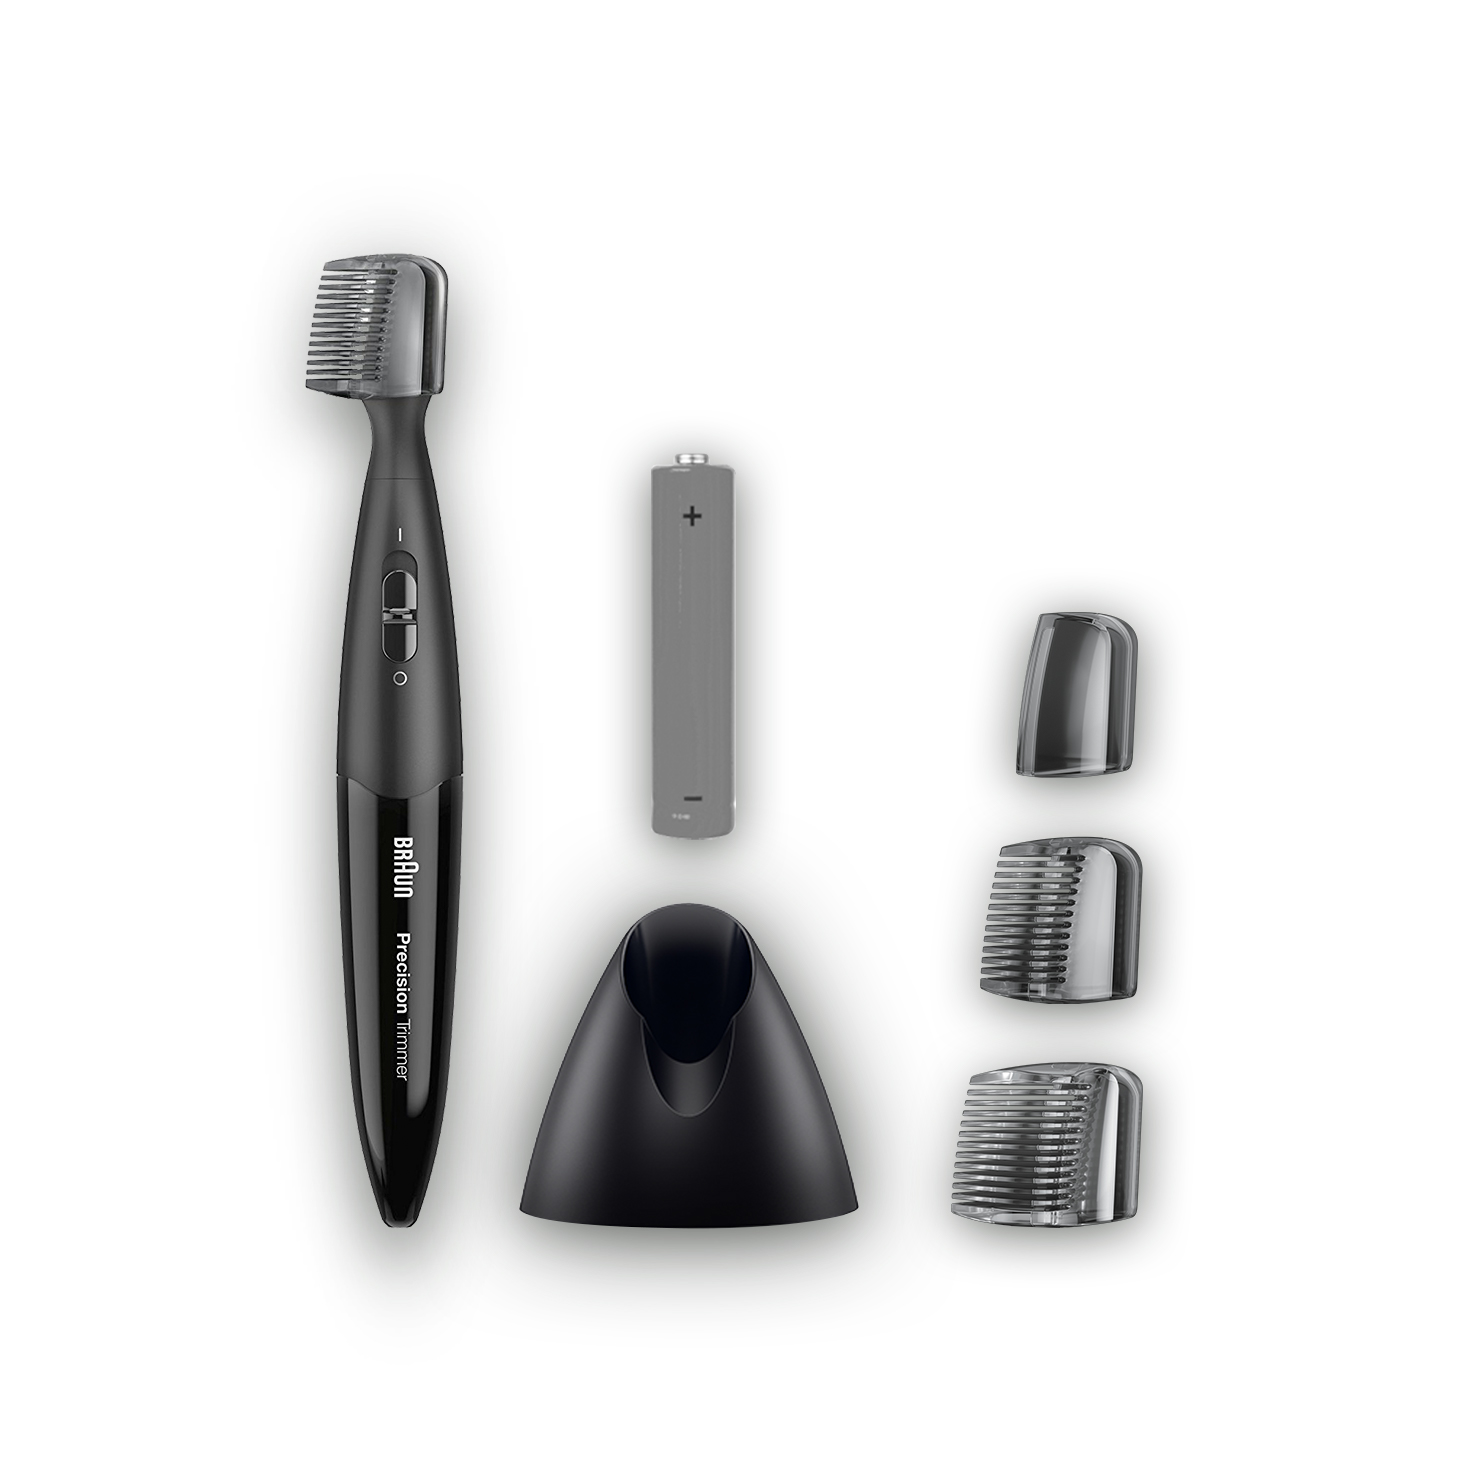 braun-precision-trimmer-front